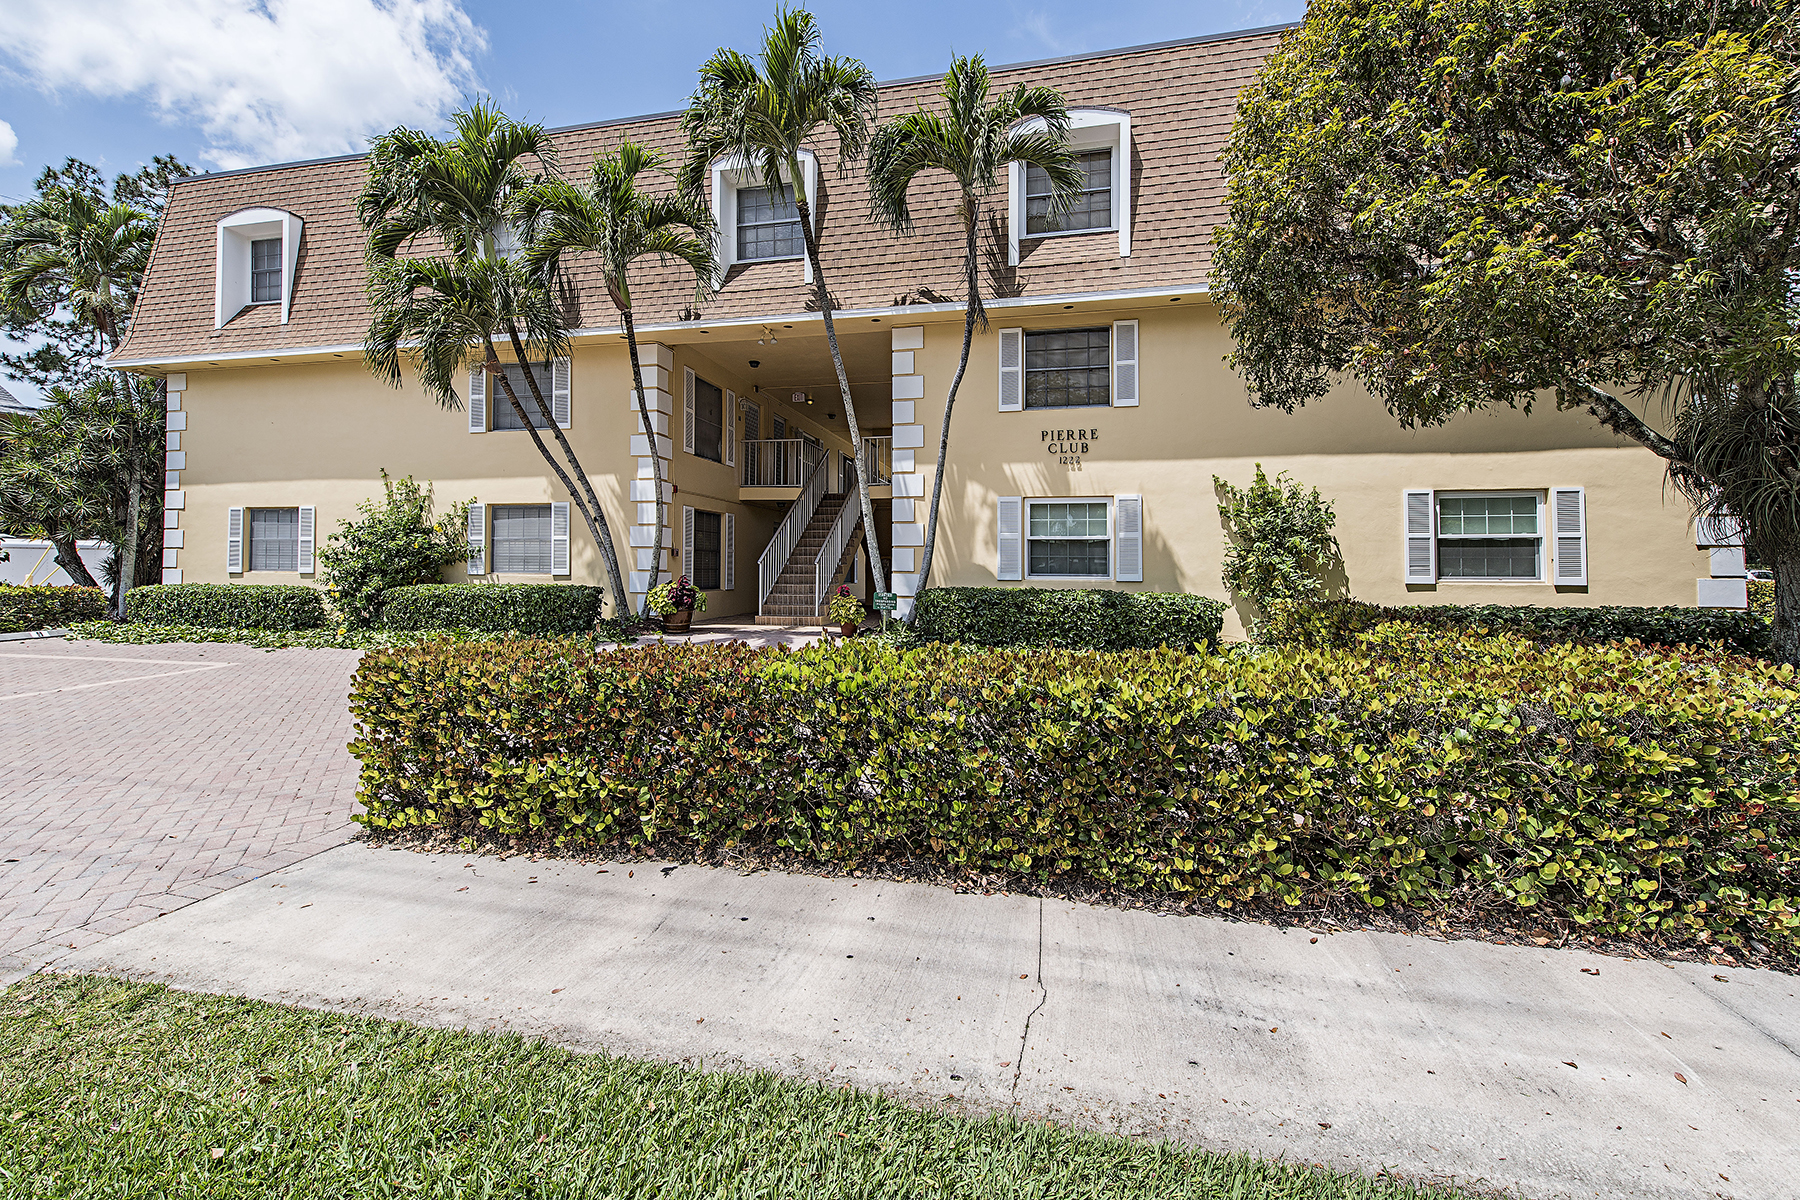 sales property at OLDE NAPLES - PIERRE CLUB